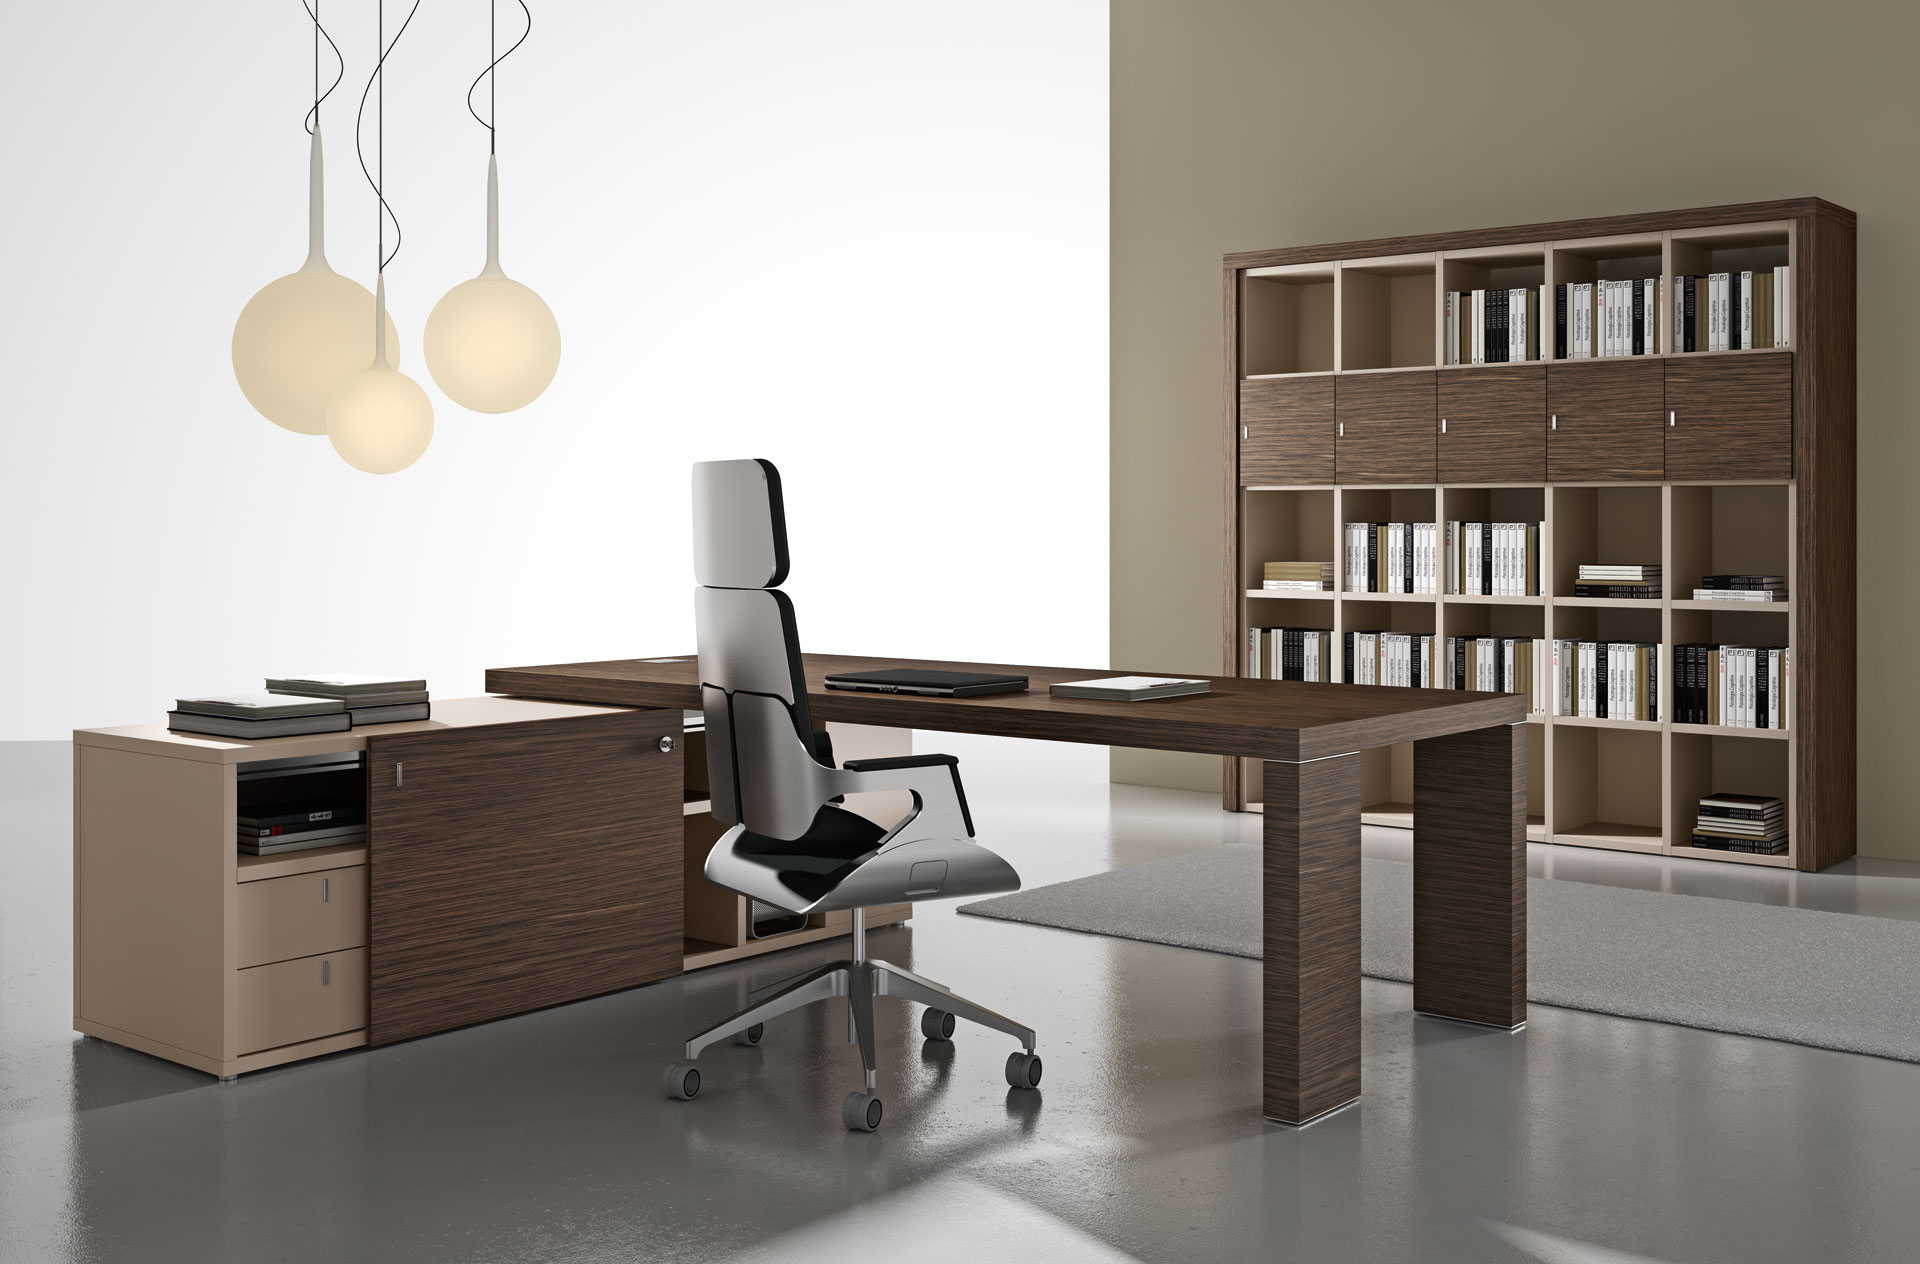 Alea office casa italia for Arredamento da studio